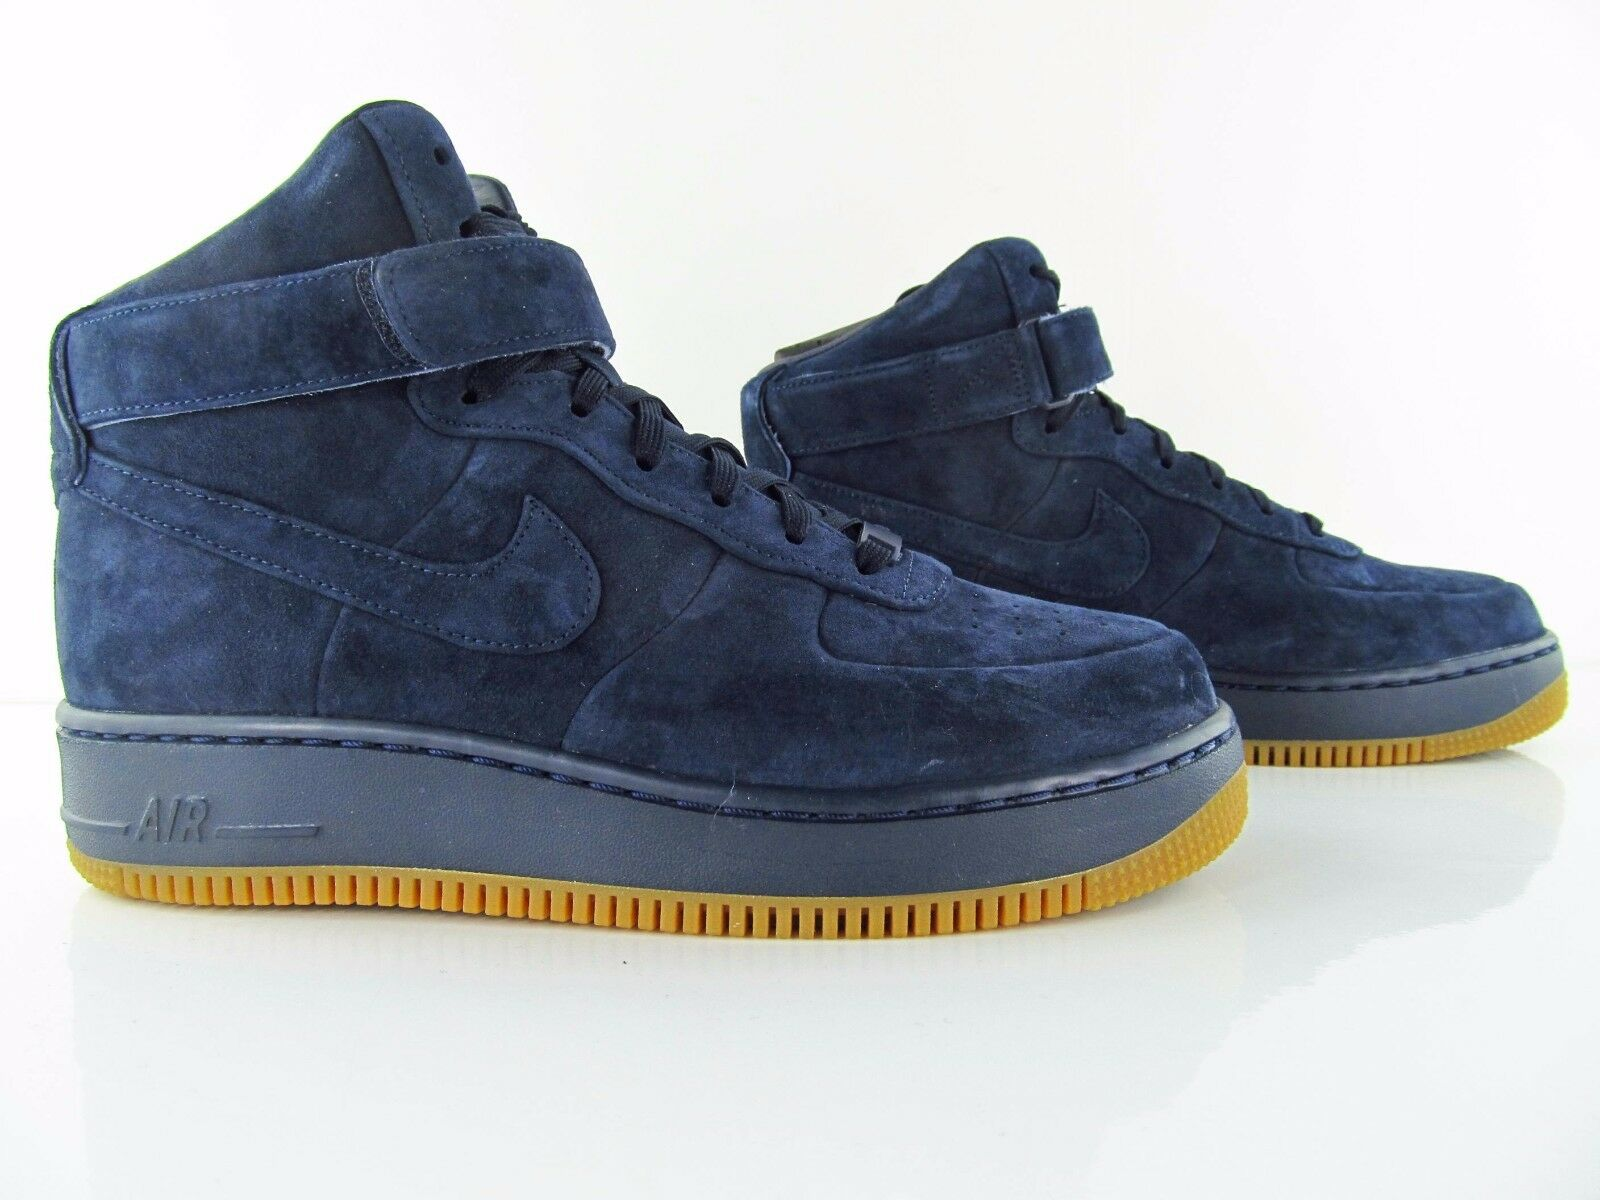 Nike Air Force Force Force 1 AF1 Upstep HI LX Obsidian Blau New Unisex UK_9 US_11.5 EUR 44 c6fe7c